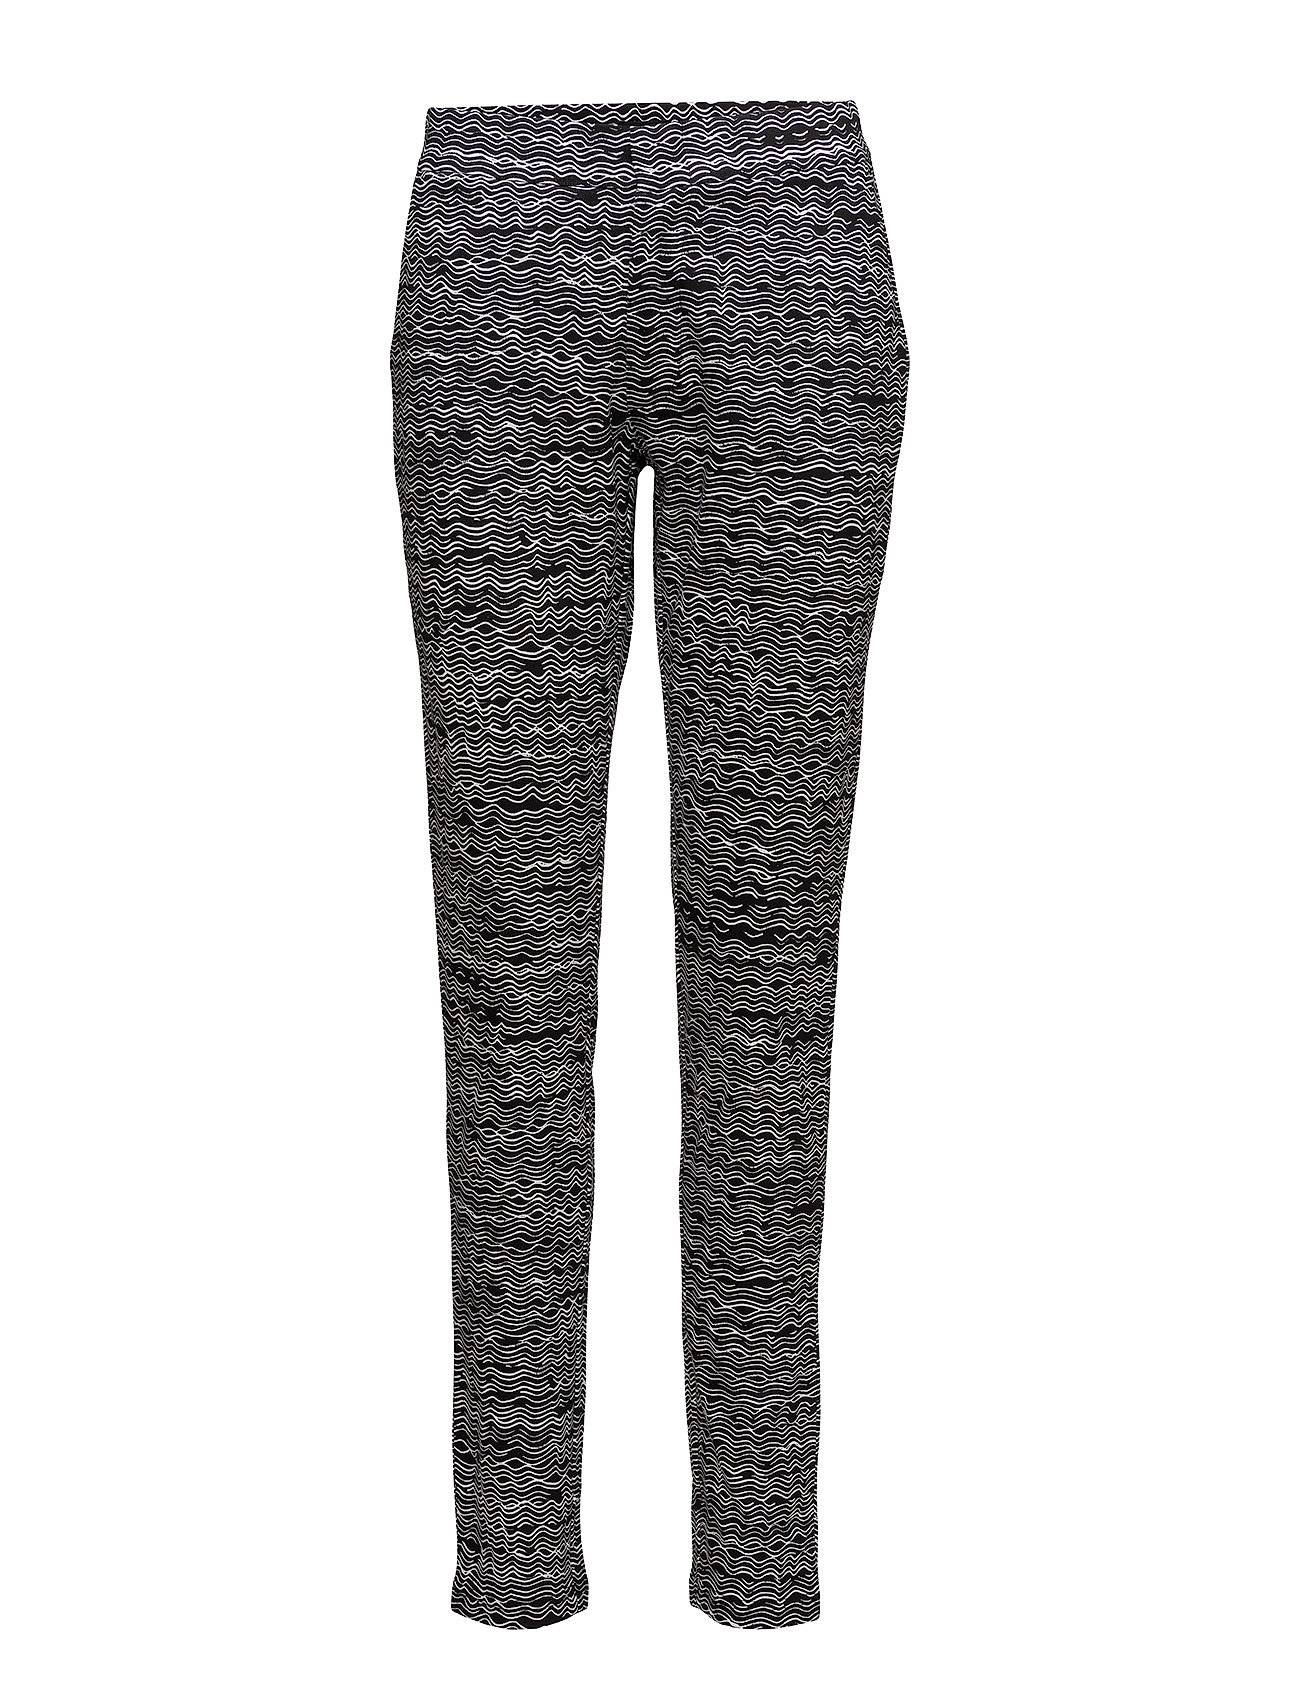 Nanso Ladies Trousers, Nuudeli